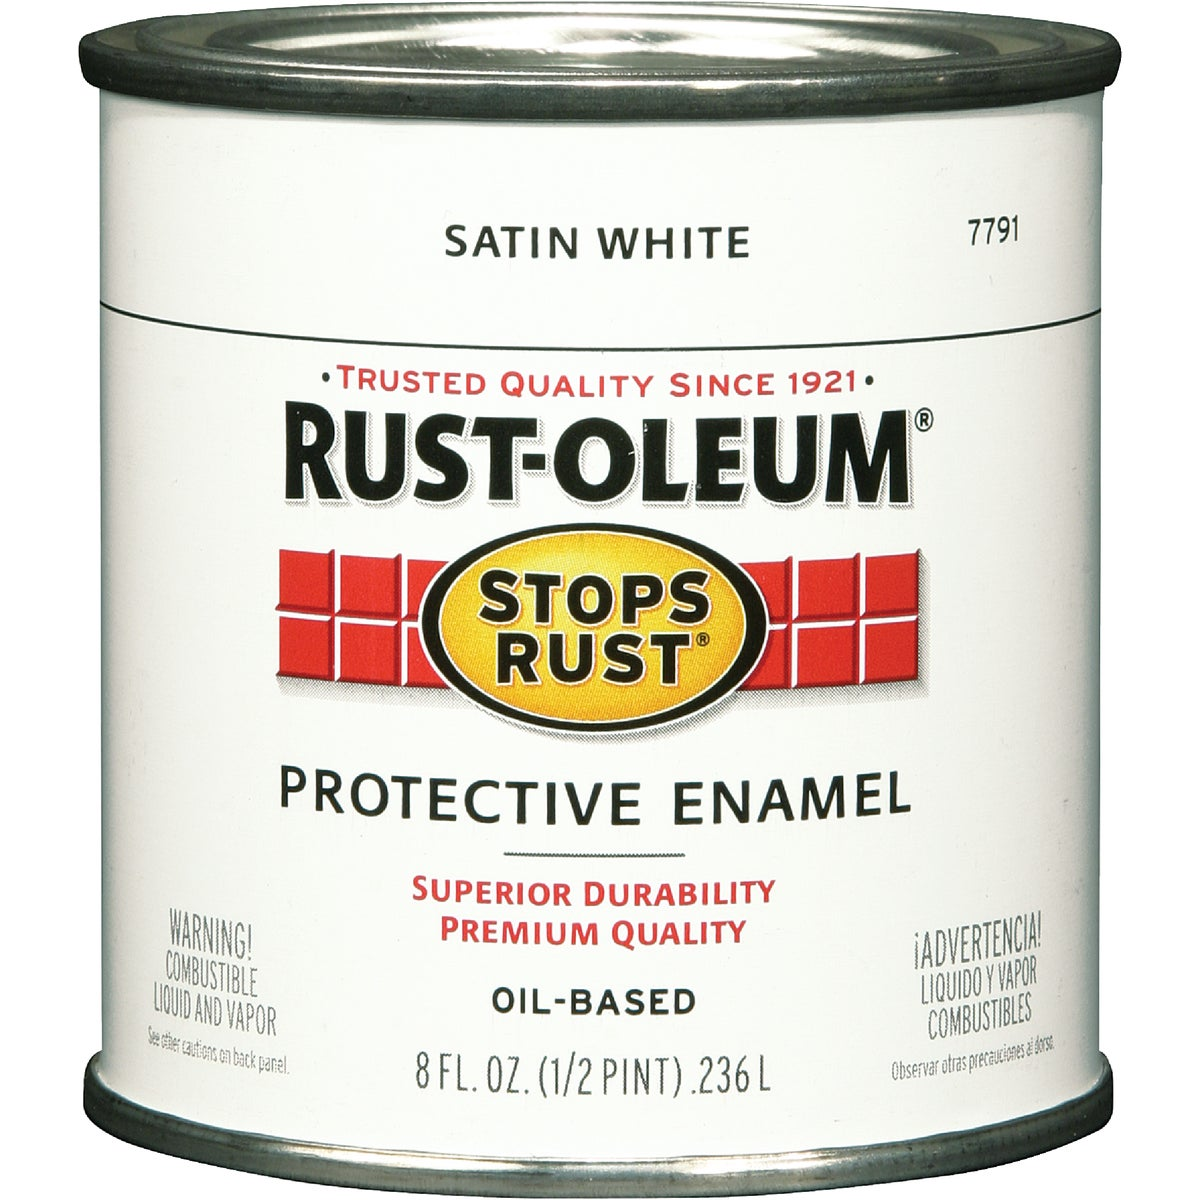 SATIN WHITE ENAMEL - 7791-730 by Rustoleum